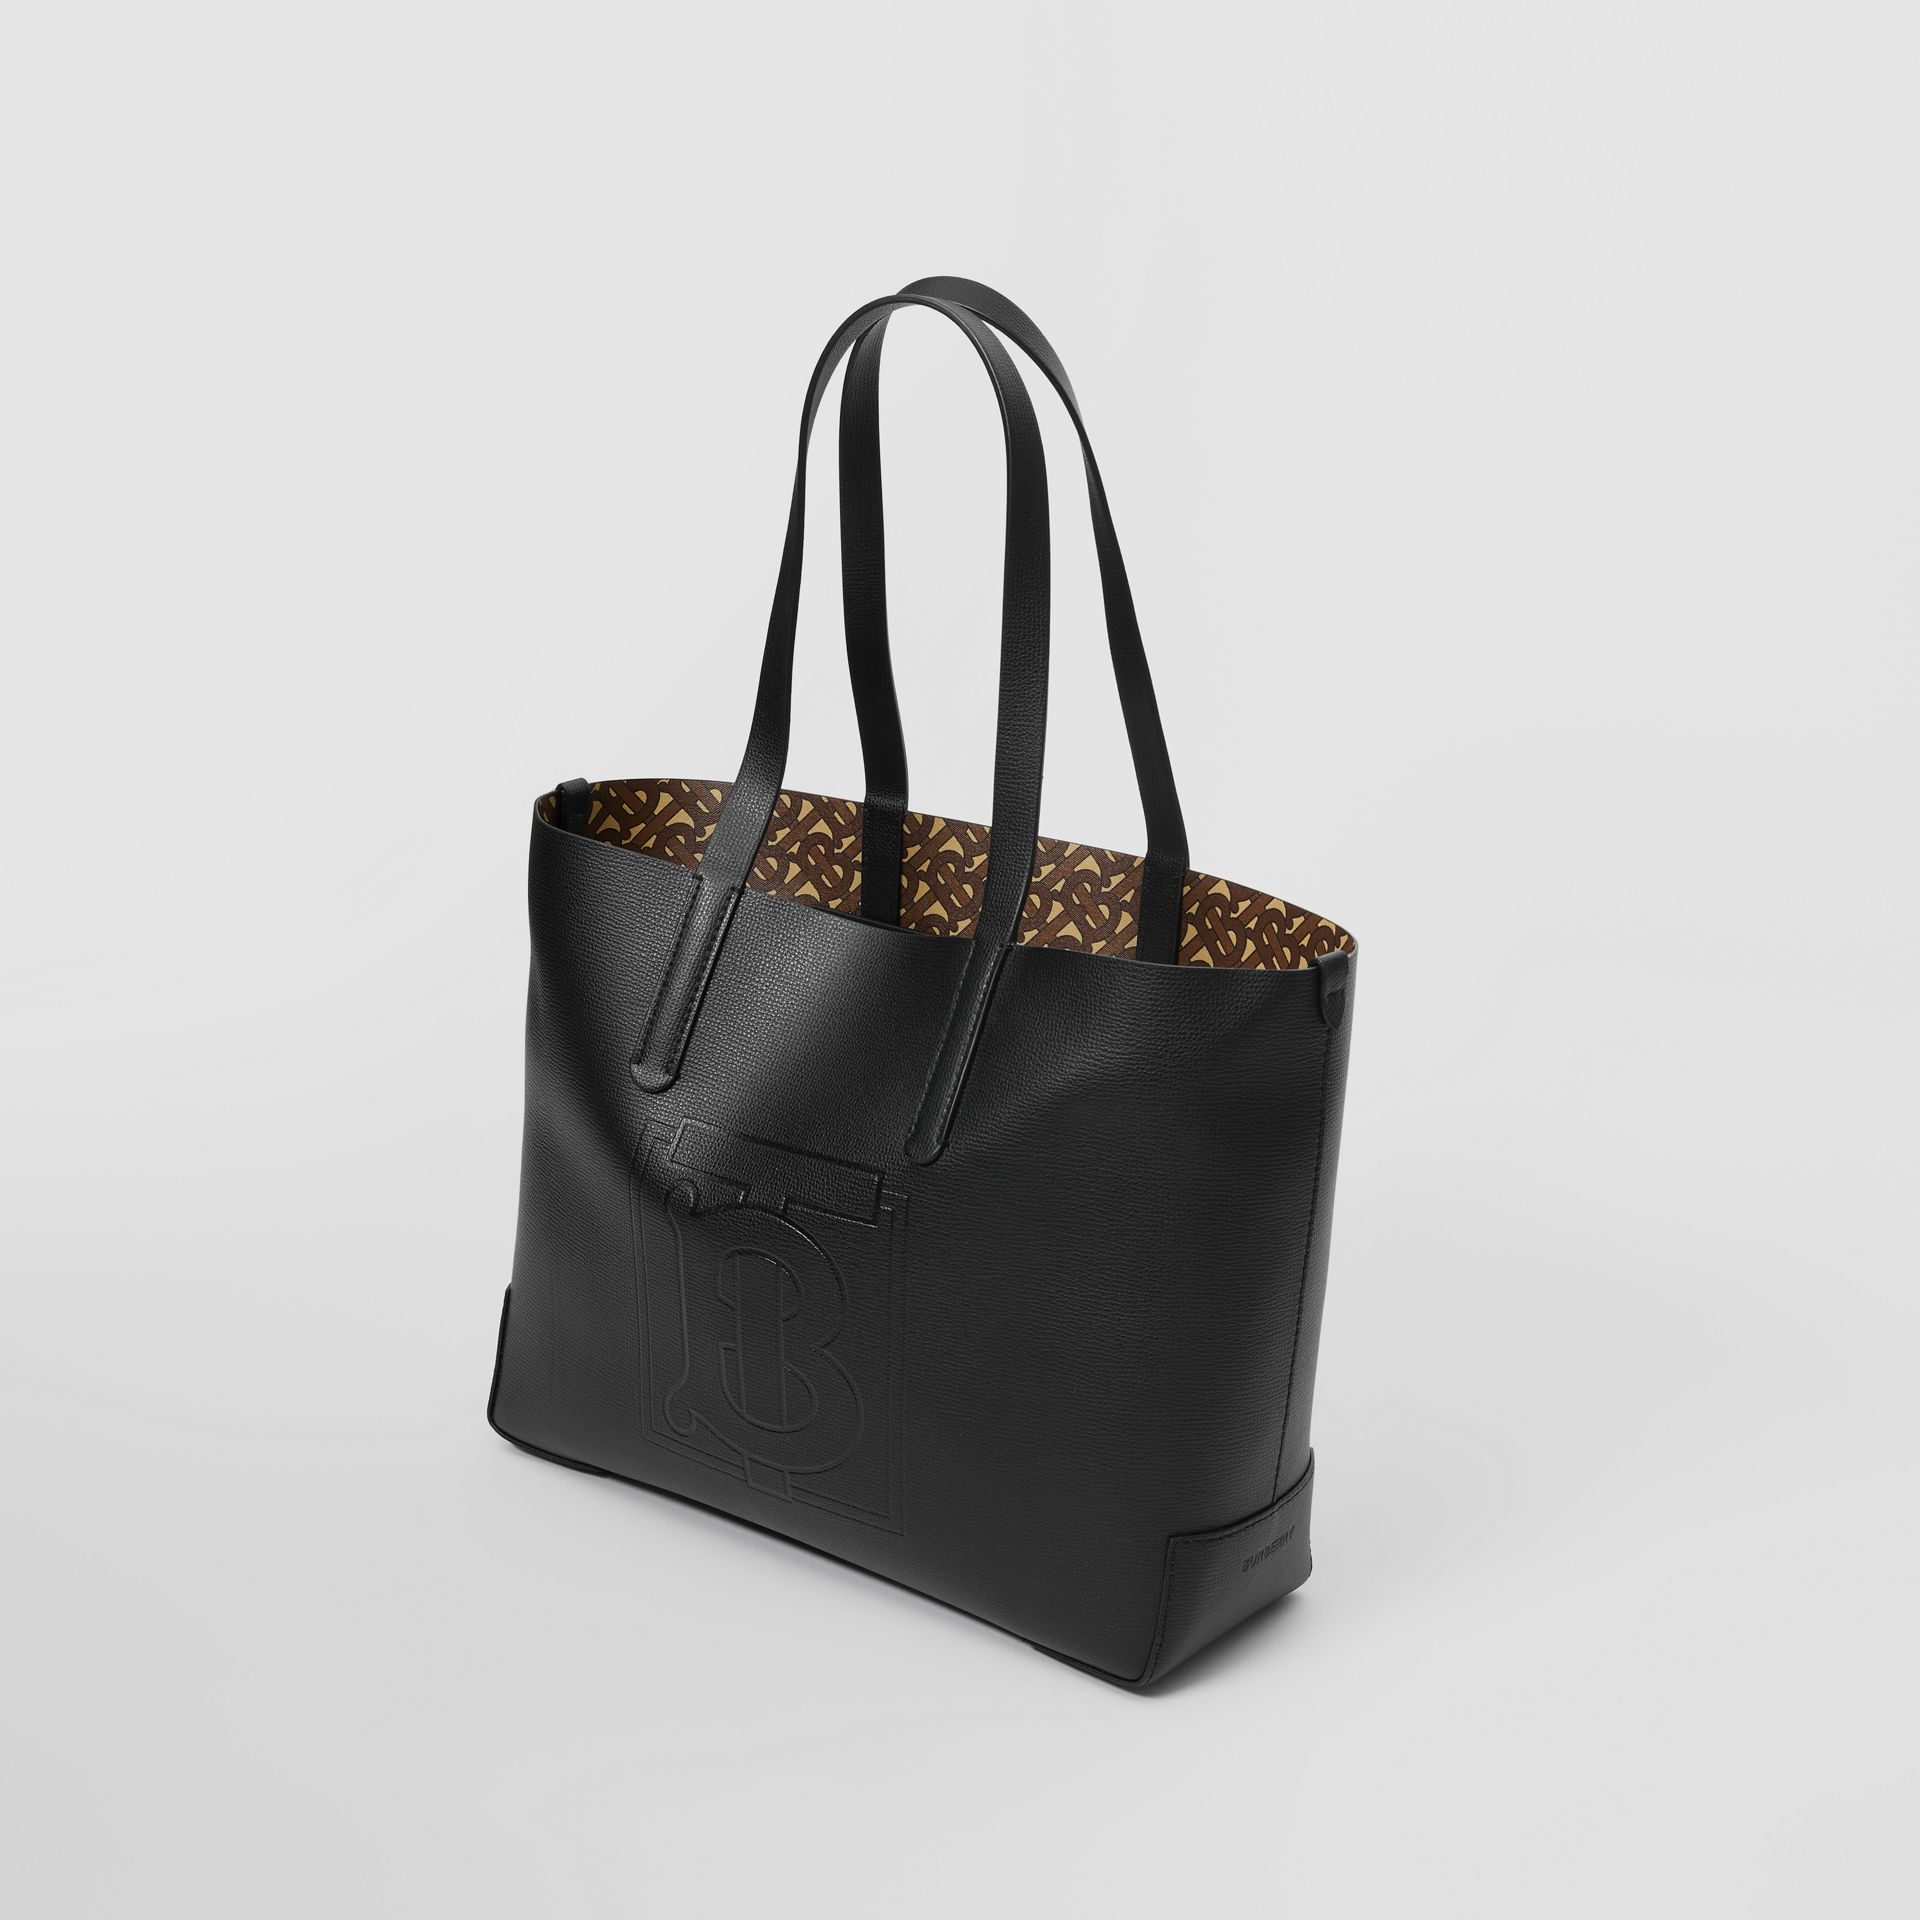 Embossed Monogram Motif Leather Tote in Black - Women | Burberry - gallery image 3